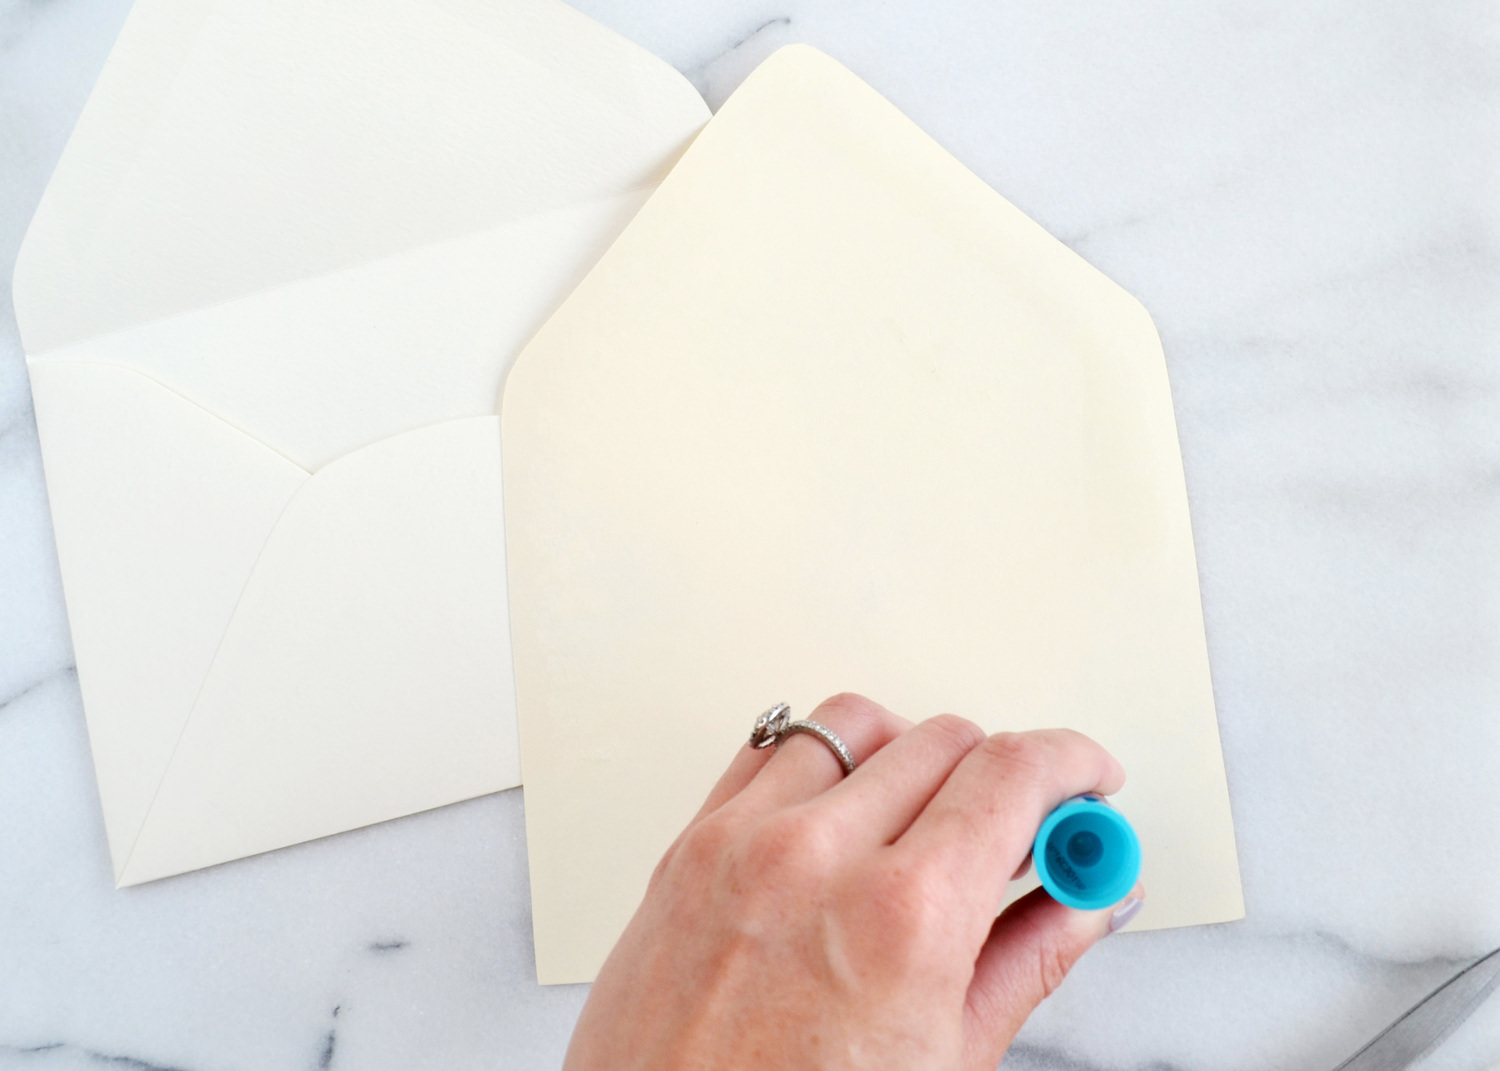 Such an easy way to upgrade envelopes! Great for weddings and parties. Learn how to make DIY Wedding Envelope Liners | BoxwoodAvenue.com #envelopeliner #diy #weddinginvitations